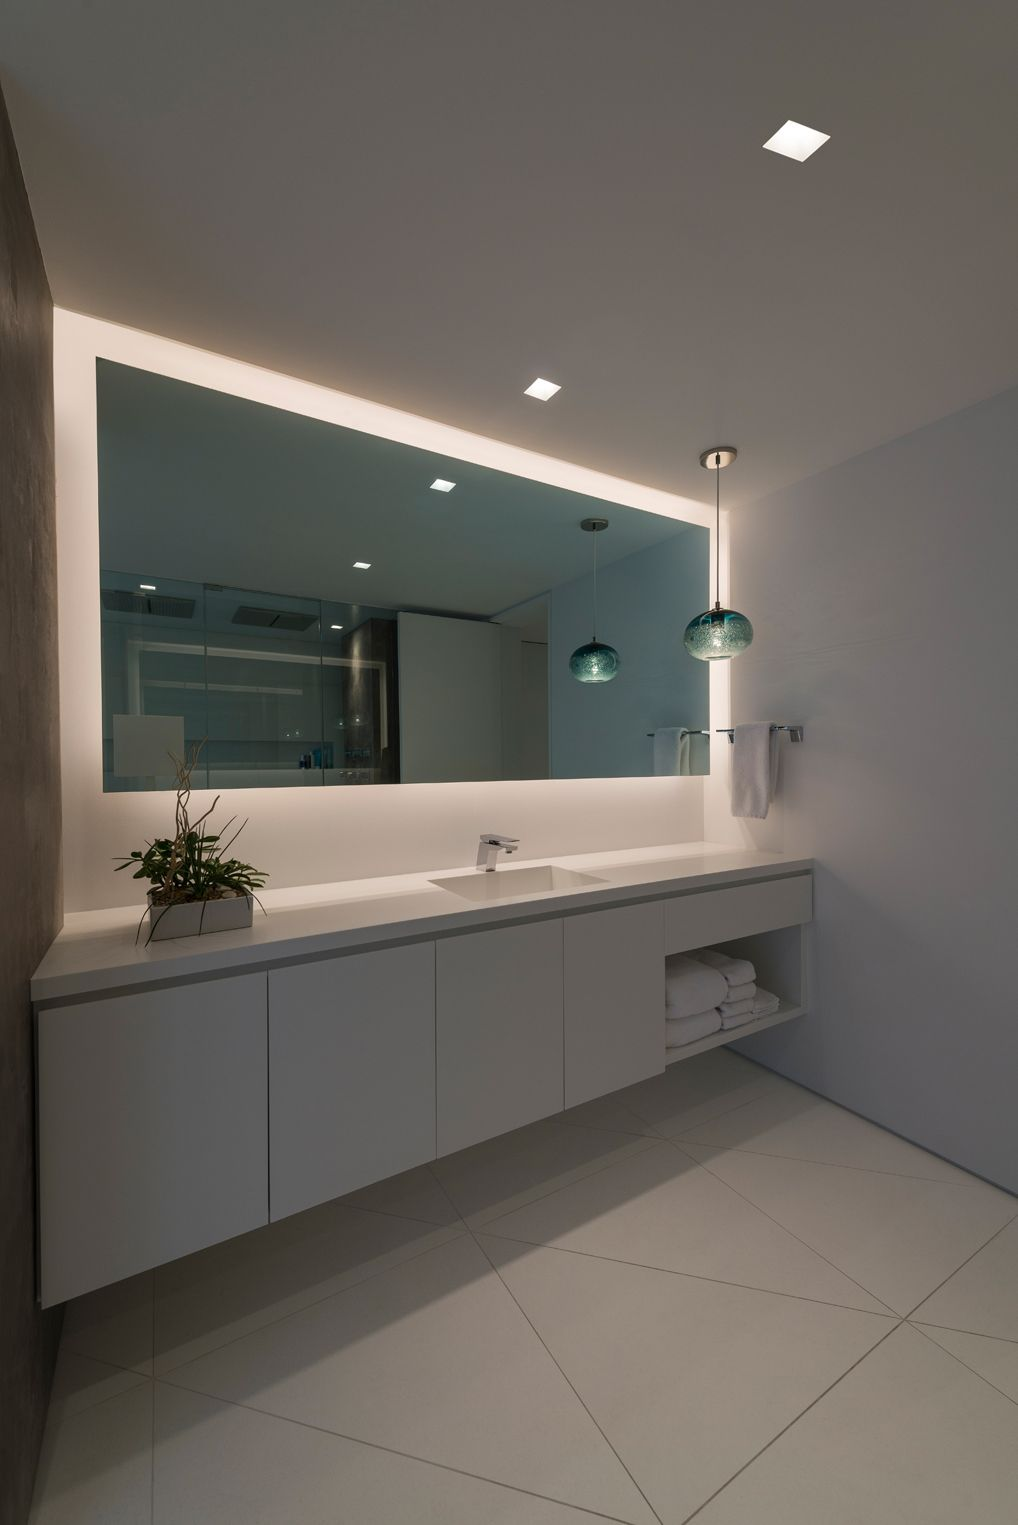 Bathroom Lights Wont Turn On the truly trimless appearance of recessed square leds allow for a